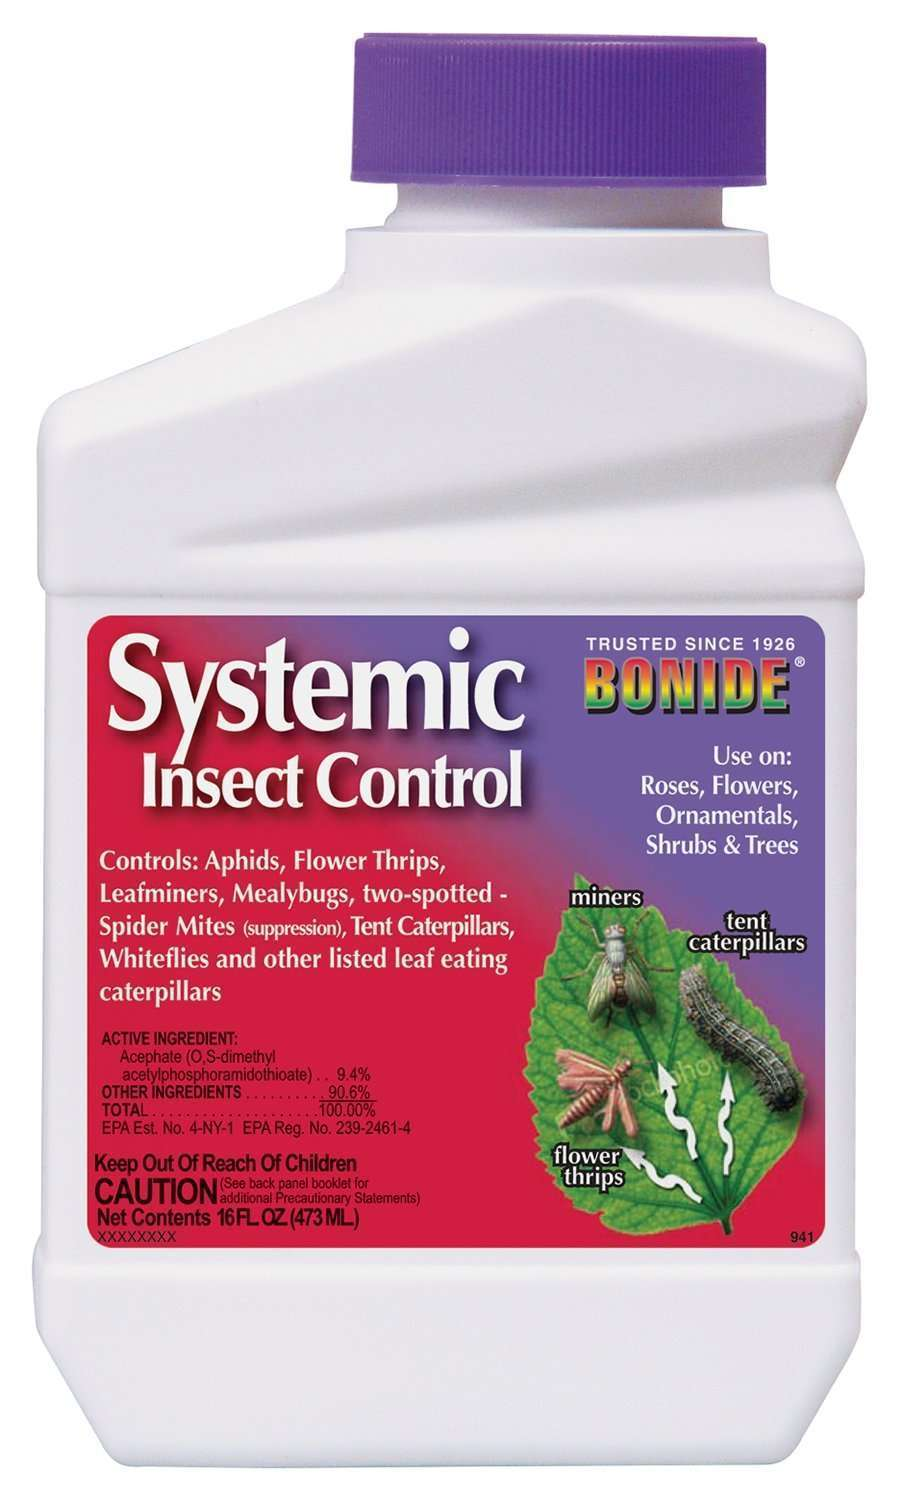 Bonide systemic pest control